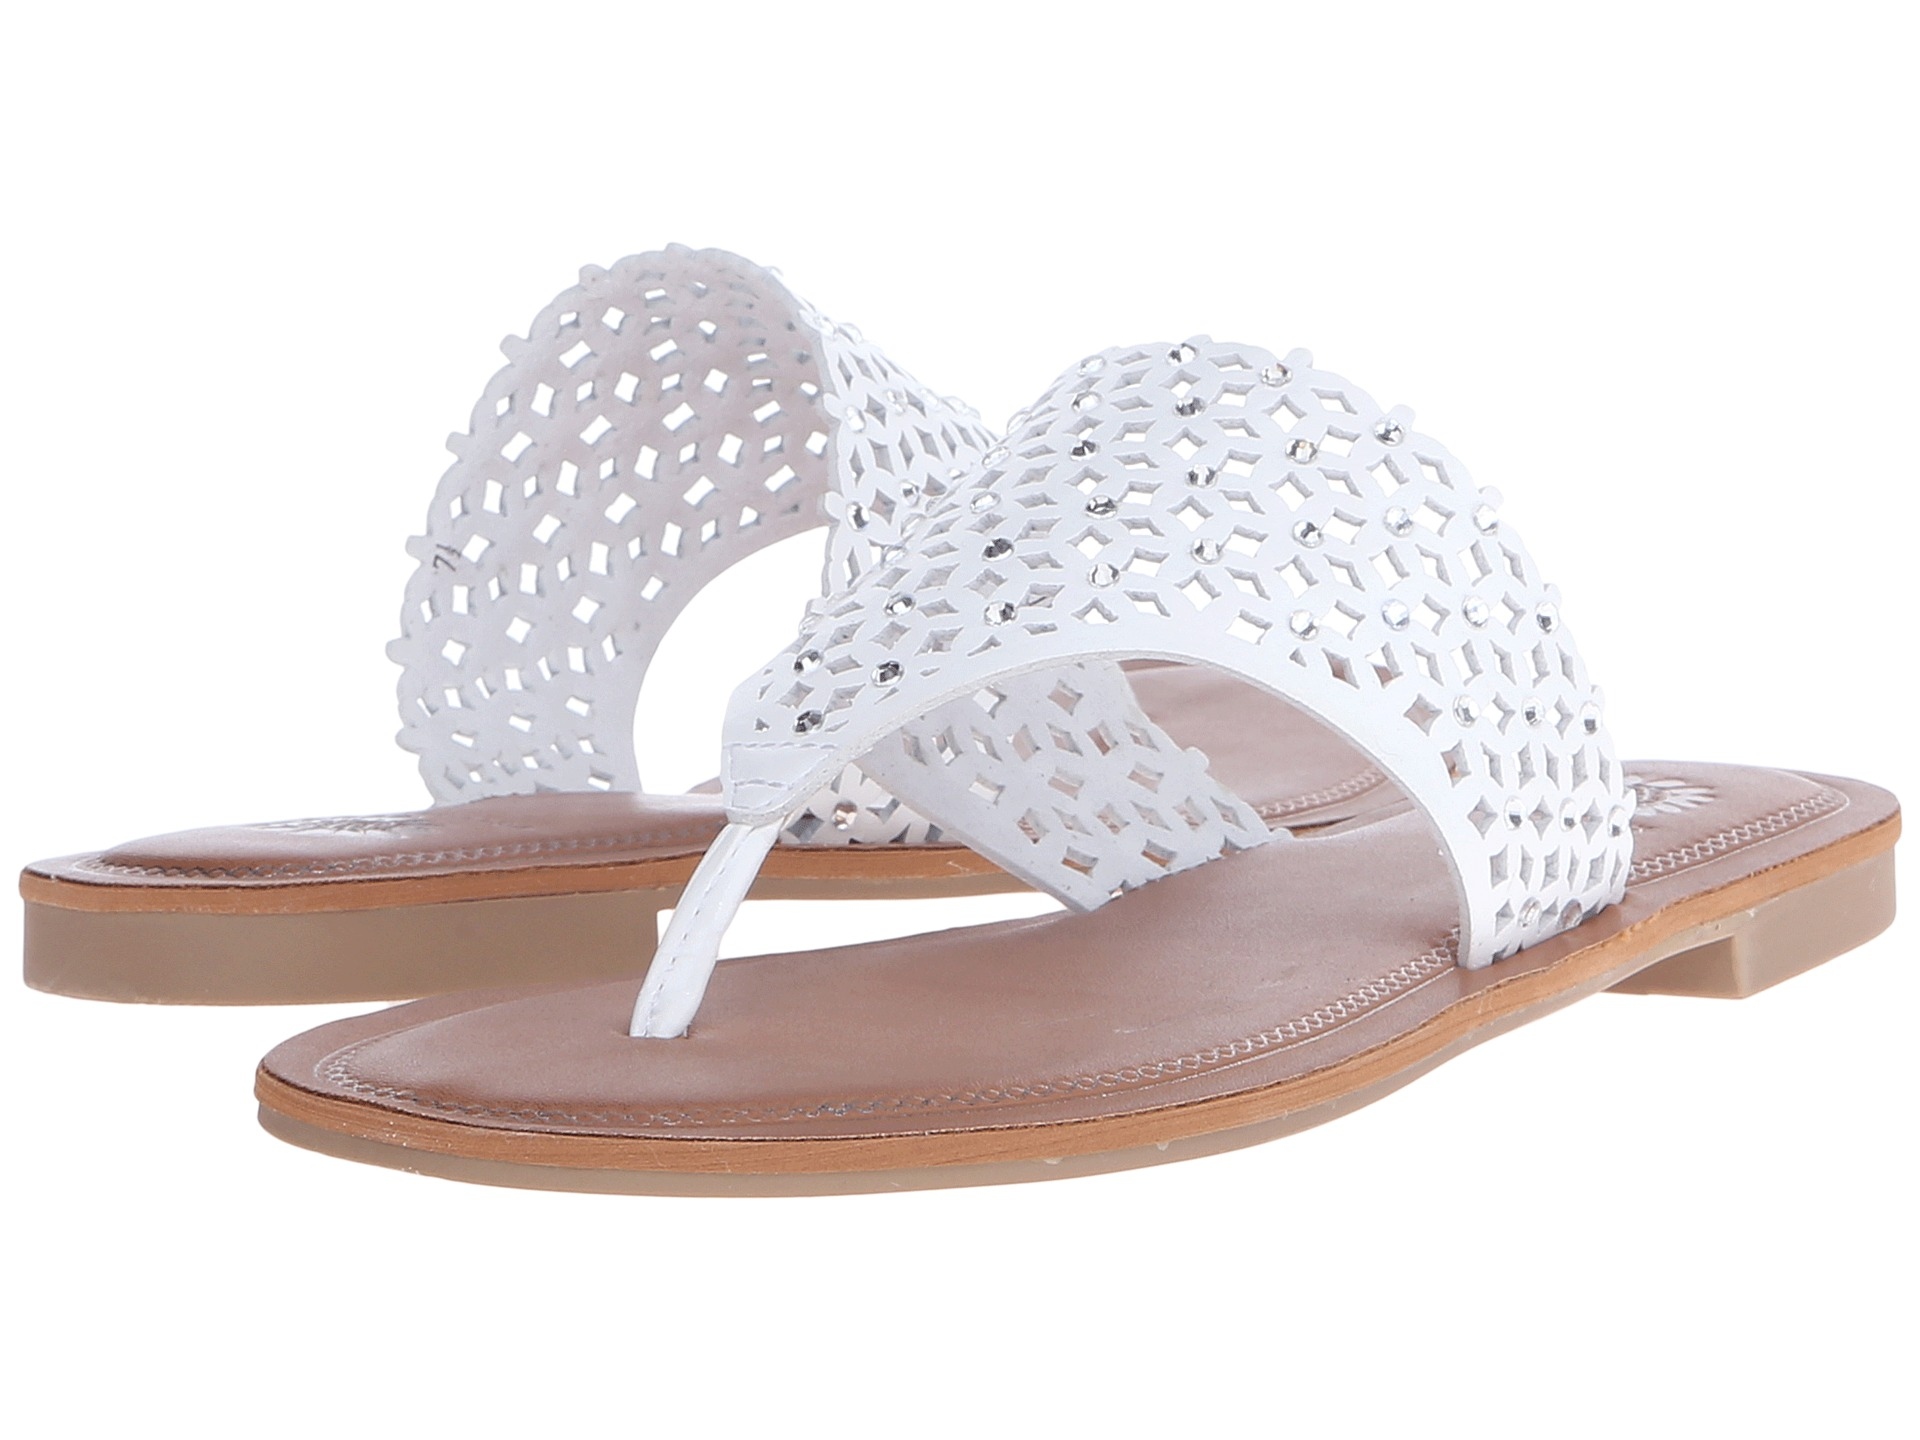 a91faaa5d Buy yellow box sandals   OFF64% Discounted